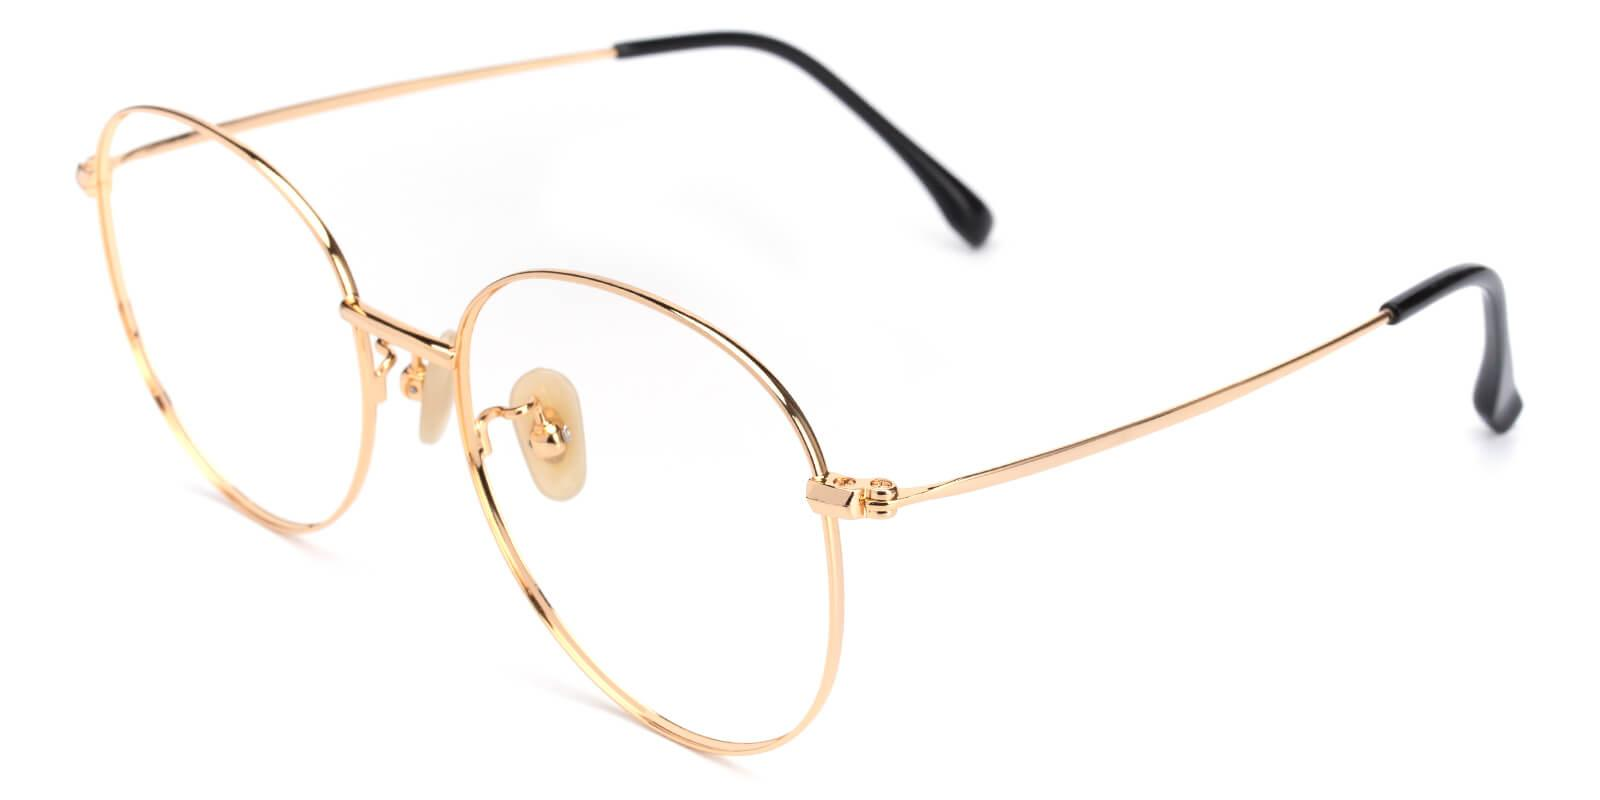 Mondigo-Gold-Round-Titanium-Eyeglasses-additional1